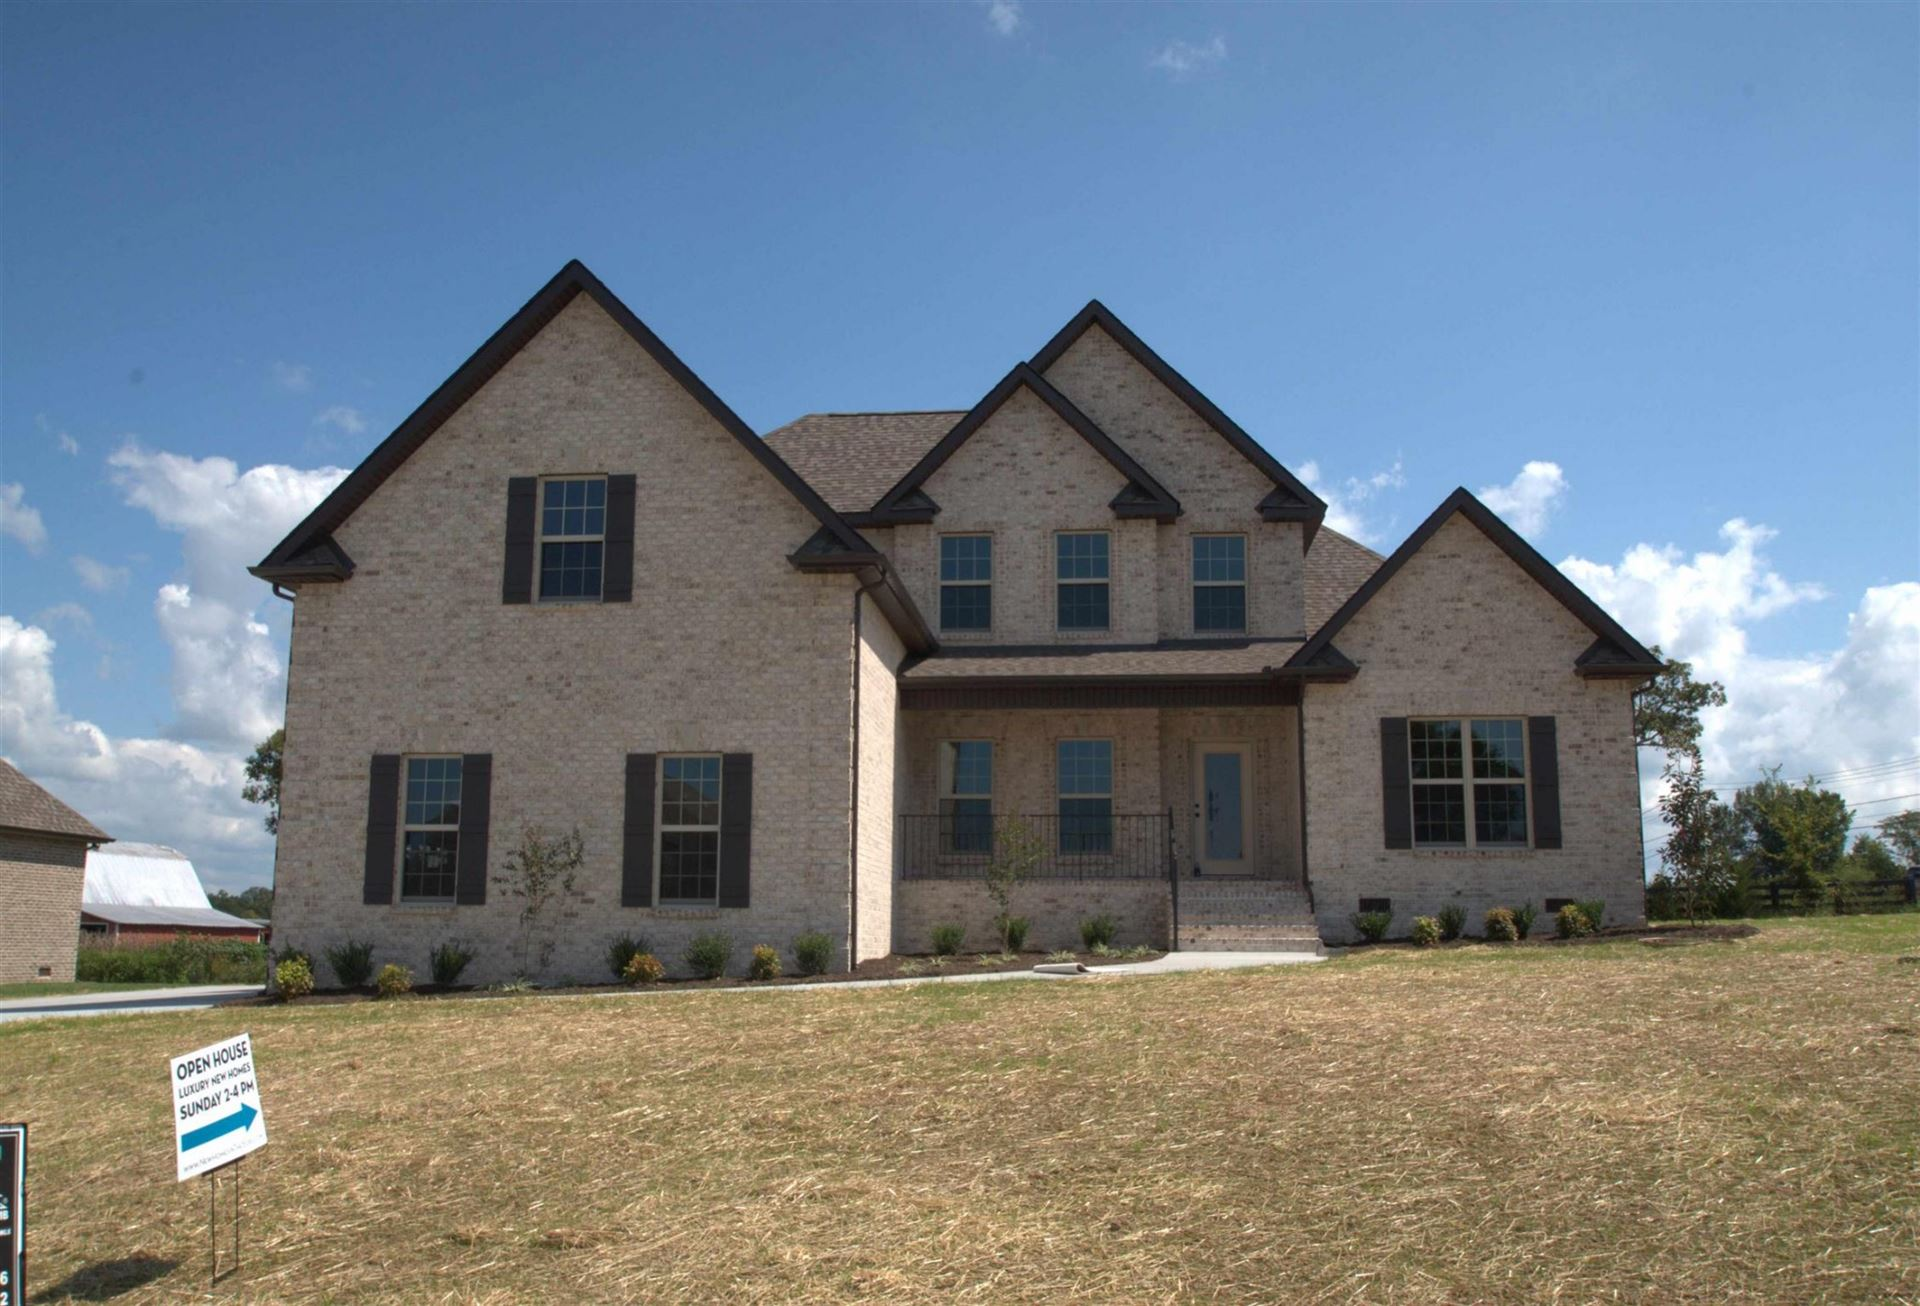 1105 Alex Walker Dr, Christiana, TN 37037 - MLS#: 2219337